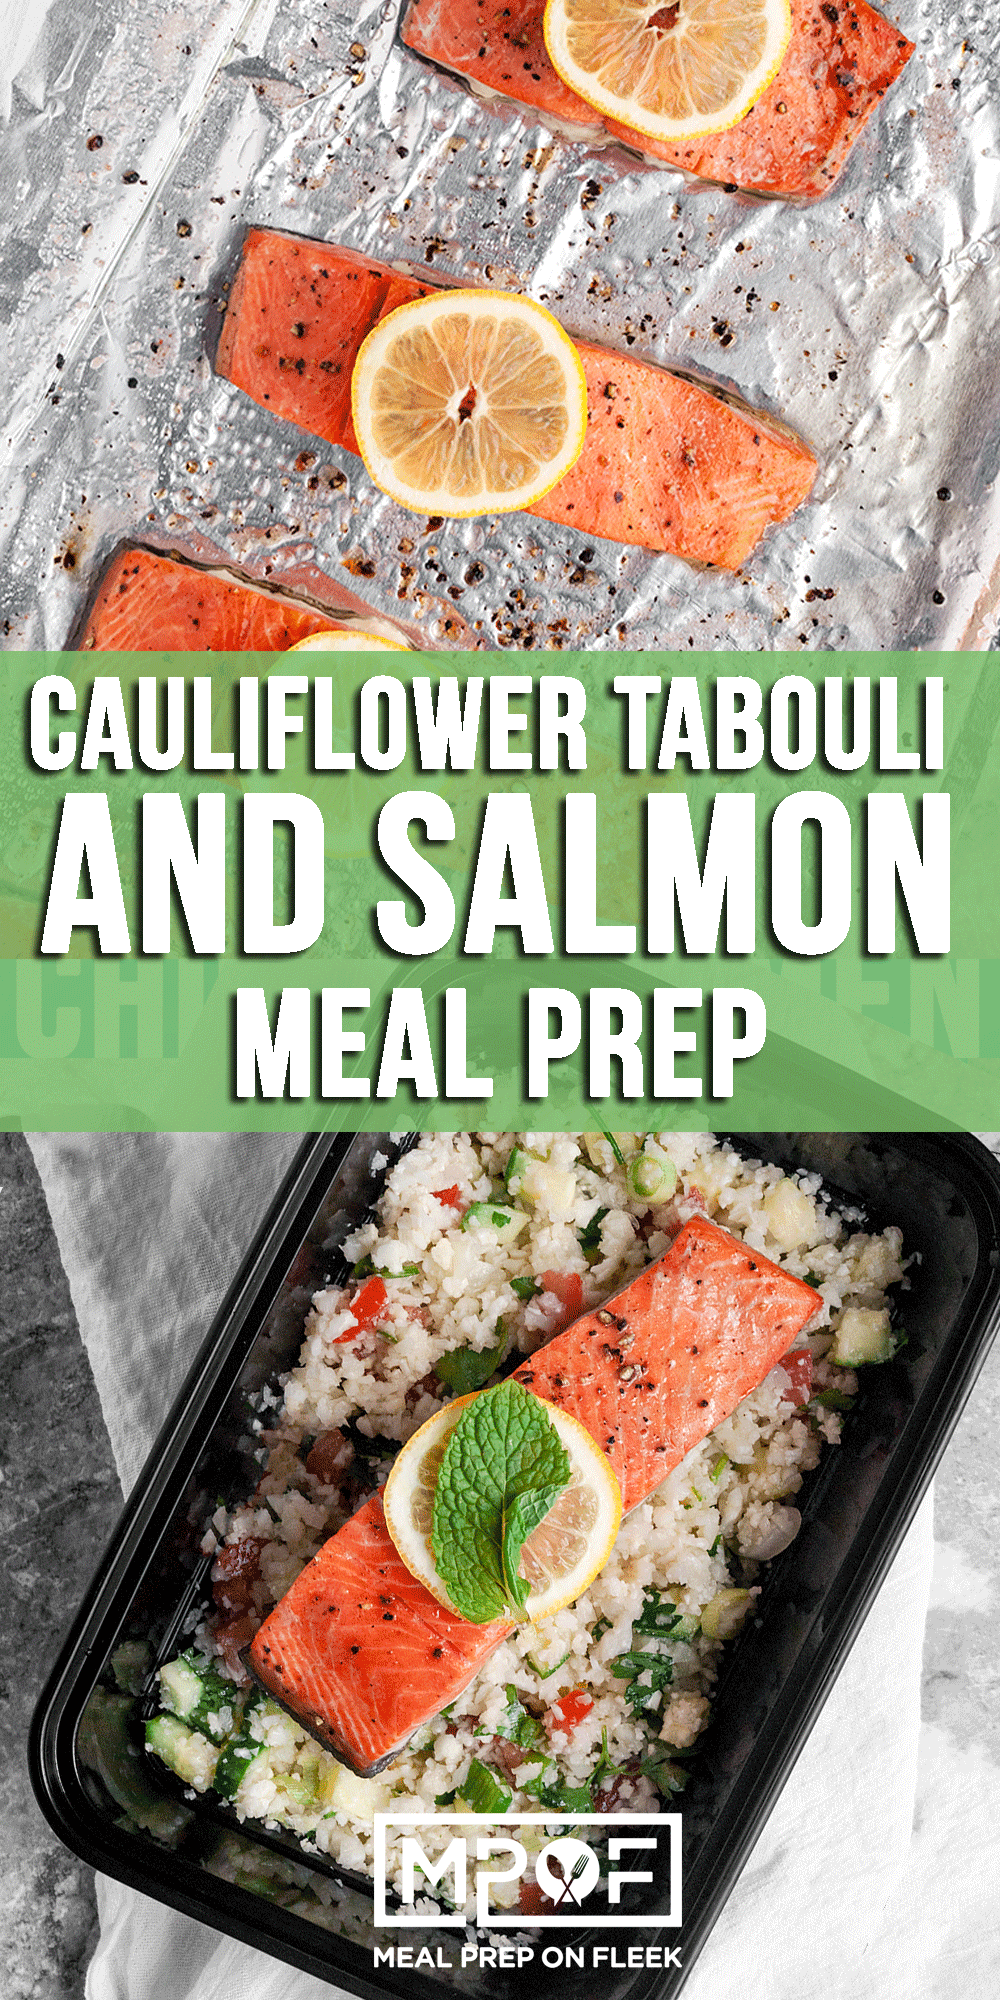 Cauliflower Tabouli and Salmon Meal Prep